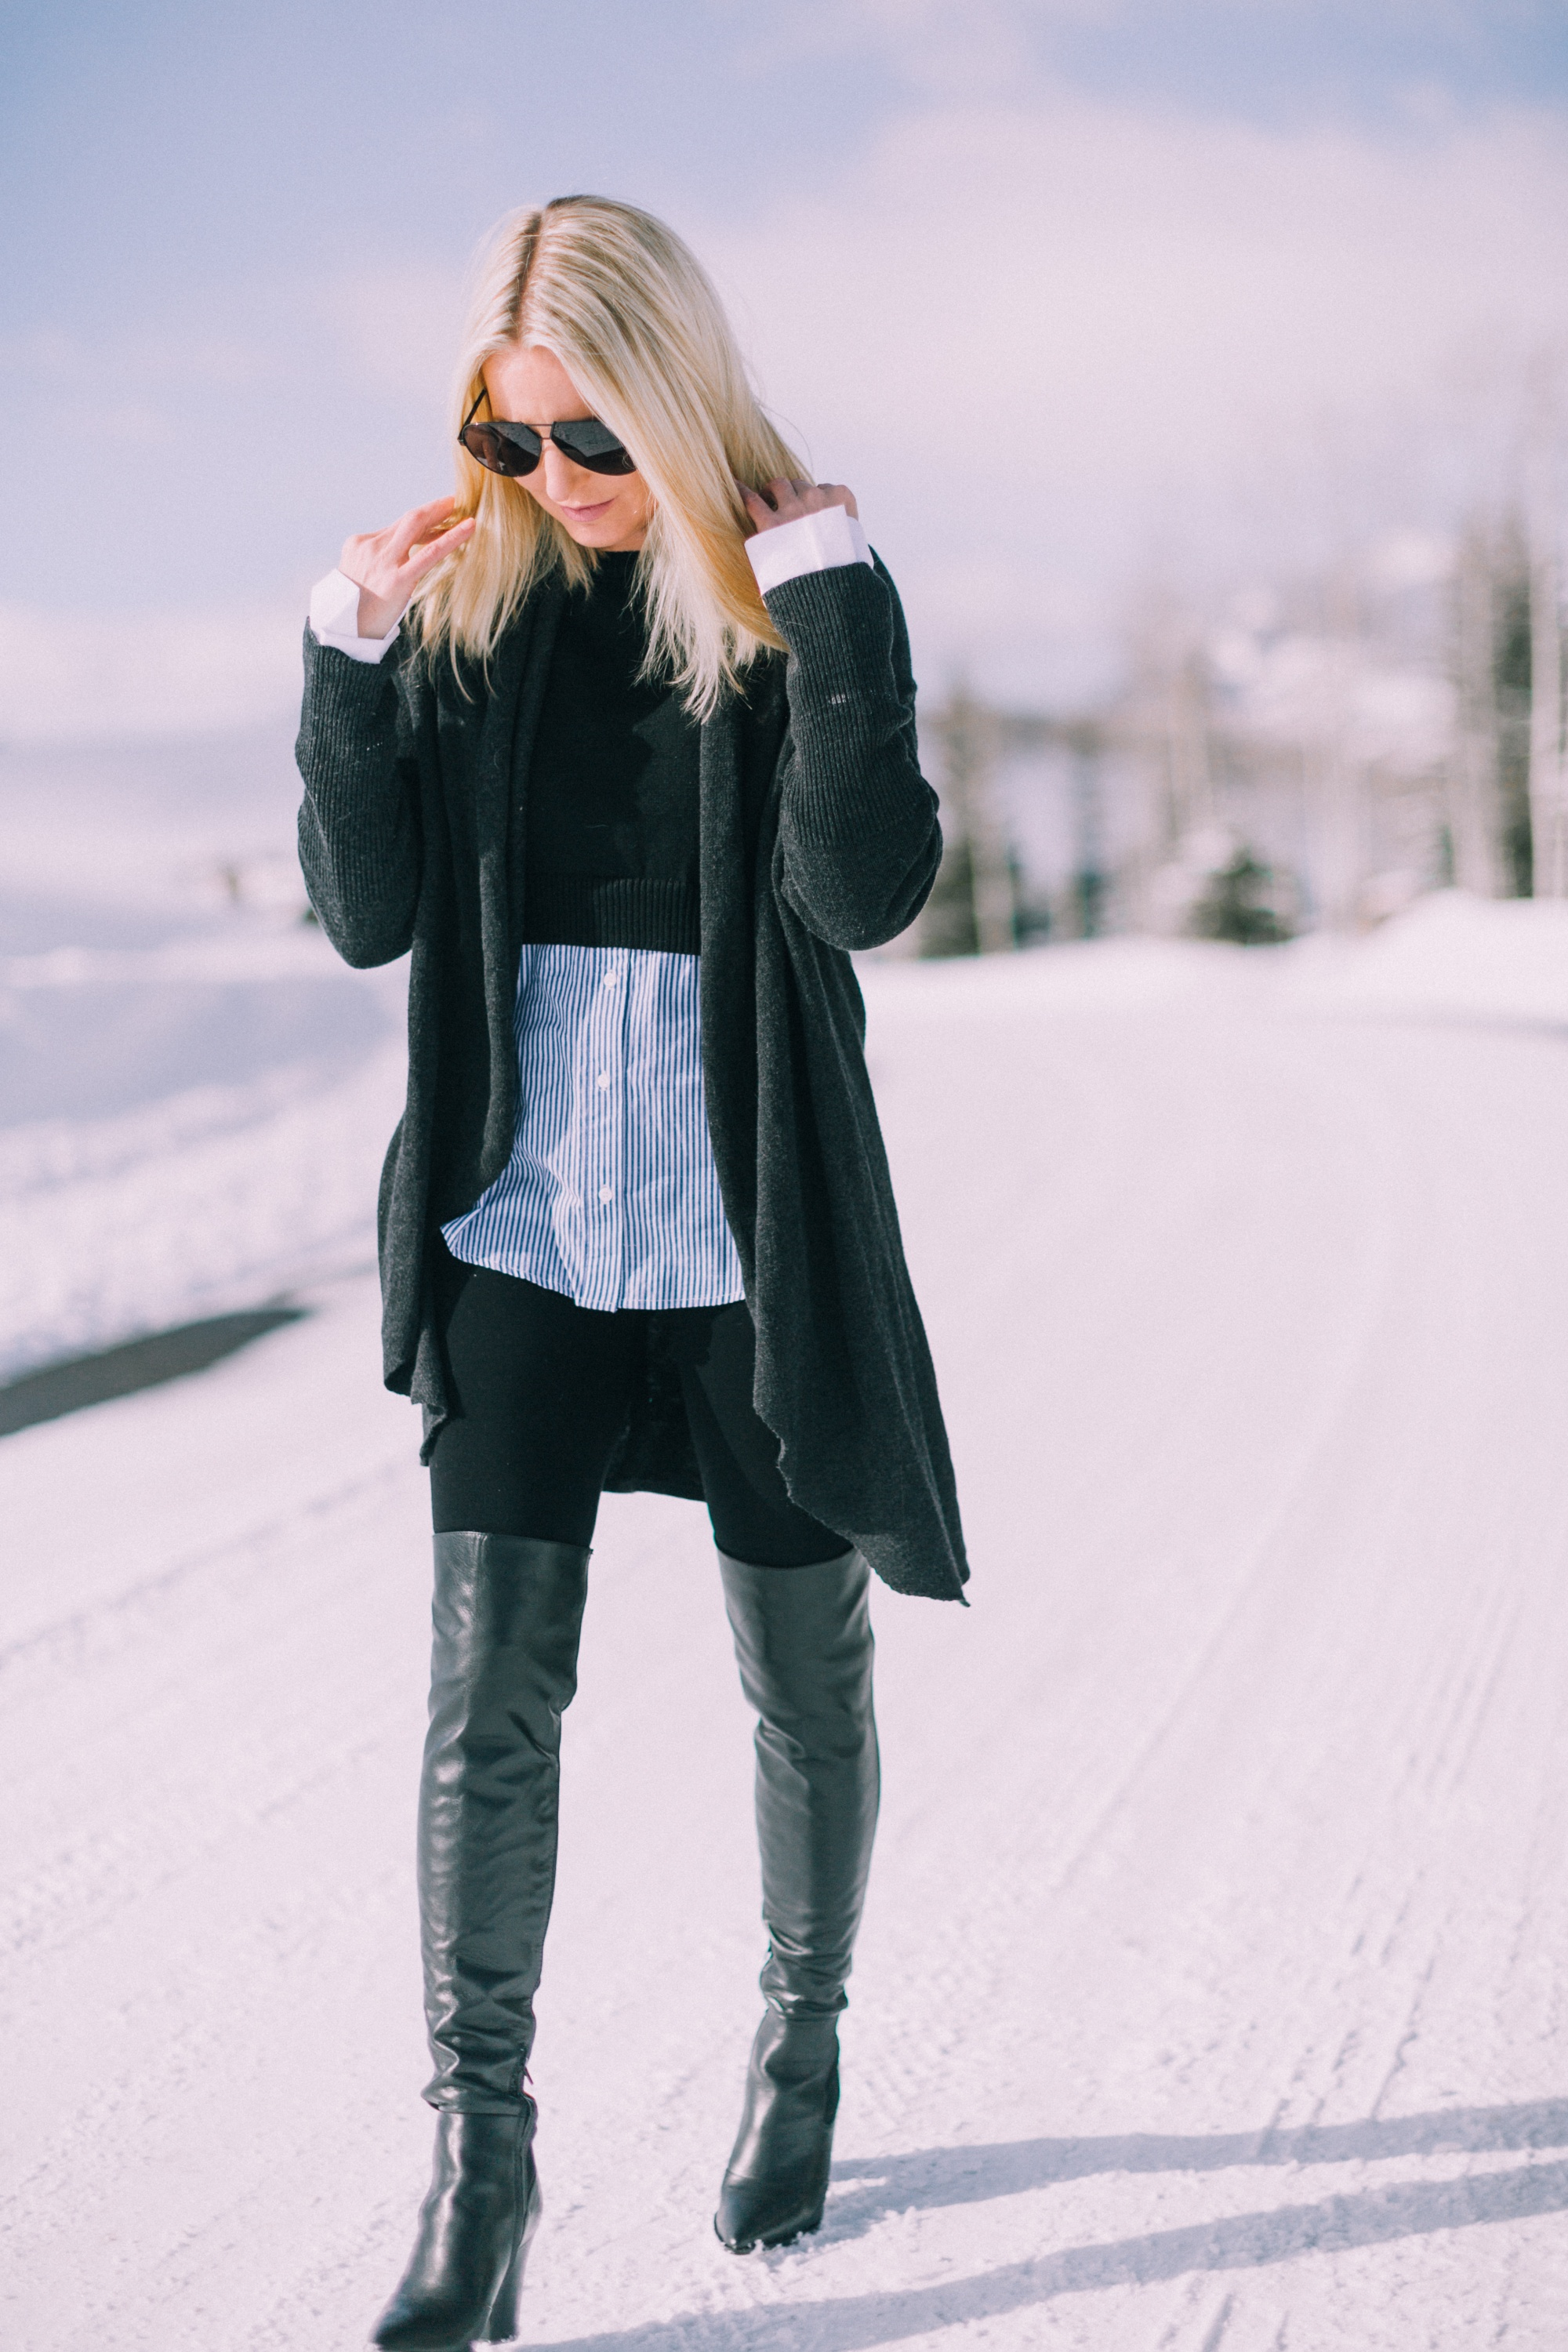 How to wear leggings over 40, featuring black Spanx leggings, Sam Edelman over the knee boots, Barefoot Dreams cardigan, and two-in-one layered sweater worn by fashion blogger Erin Busbee of busbeestyle.com in Telluride Colorado